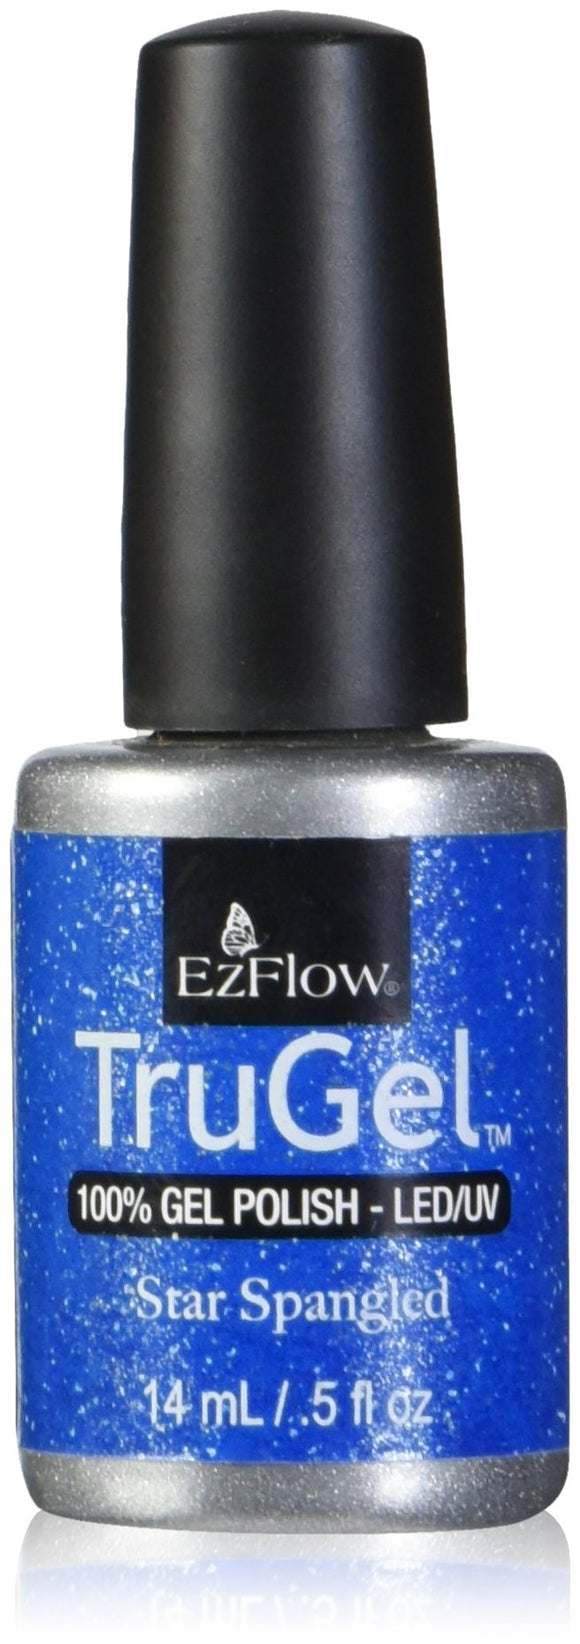 Ez Flow TruGel LED/UV Gel Polish - 14 mL (Star Spangled - EZTG42442)